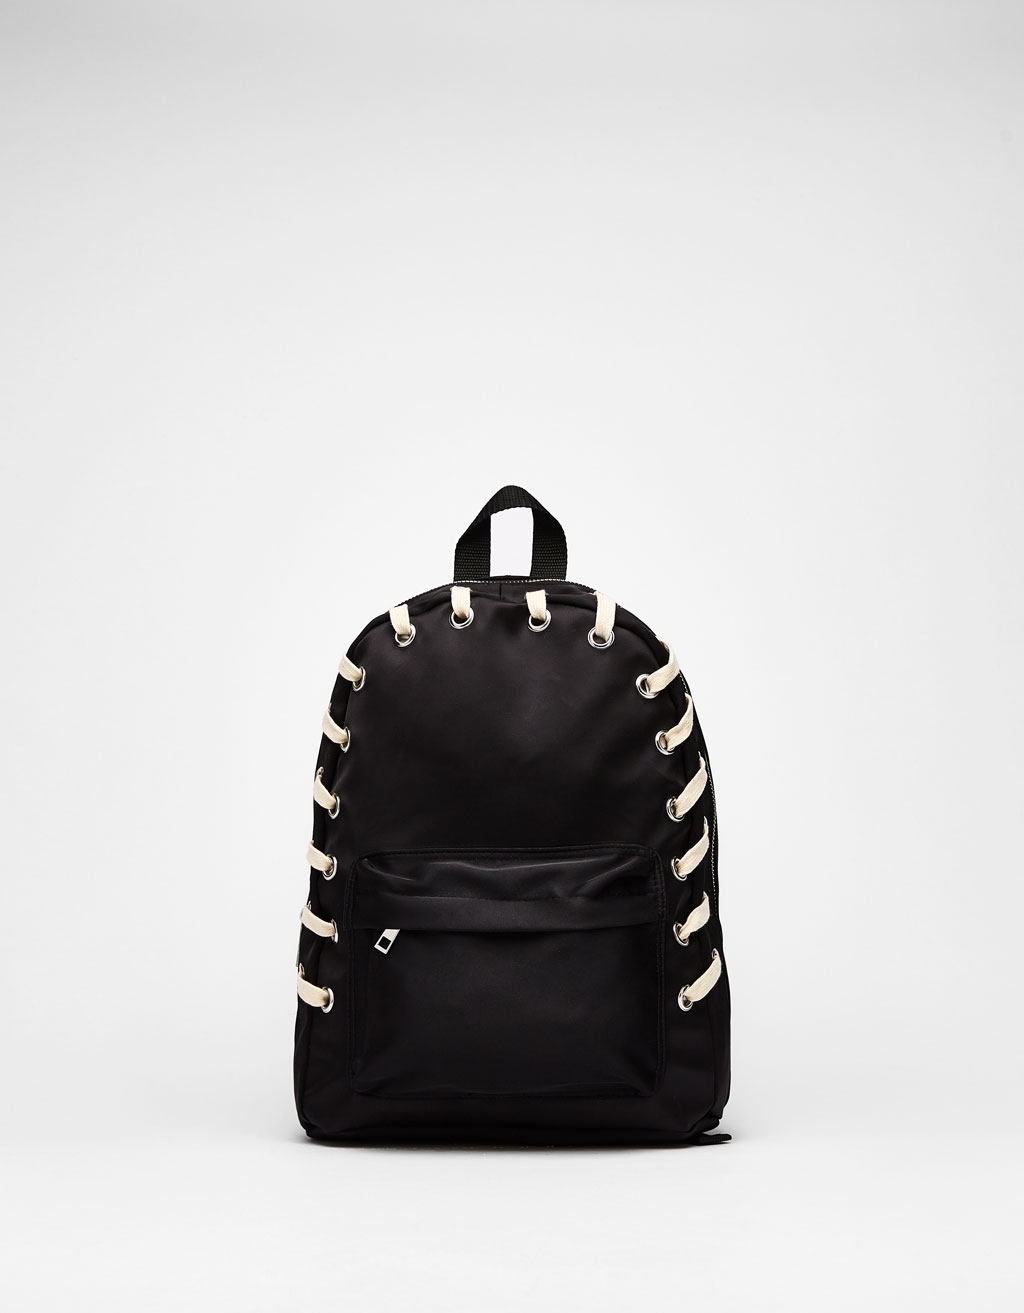 Mochila lace up